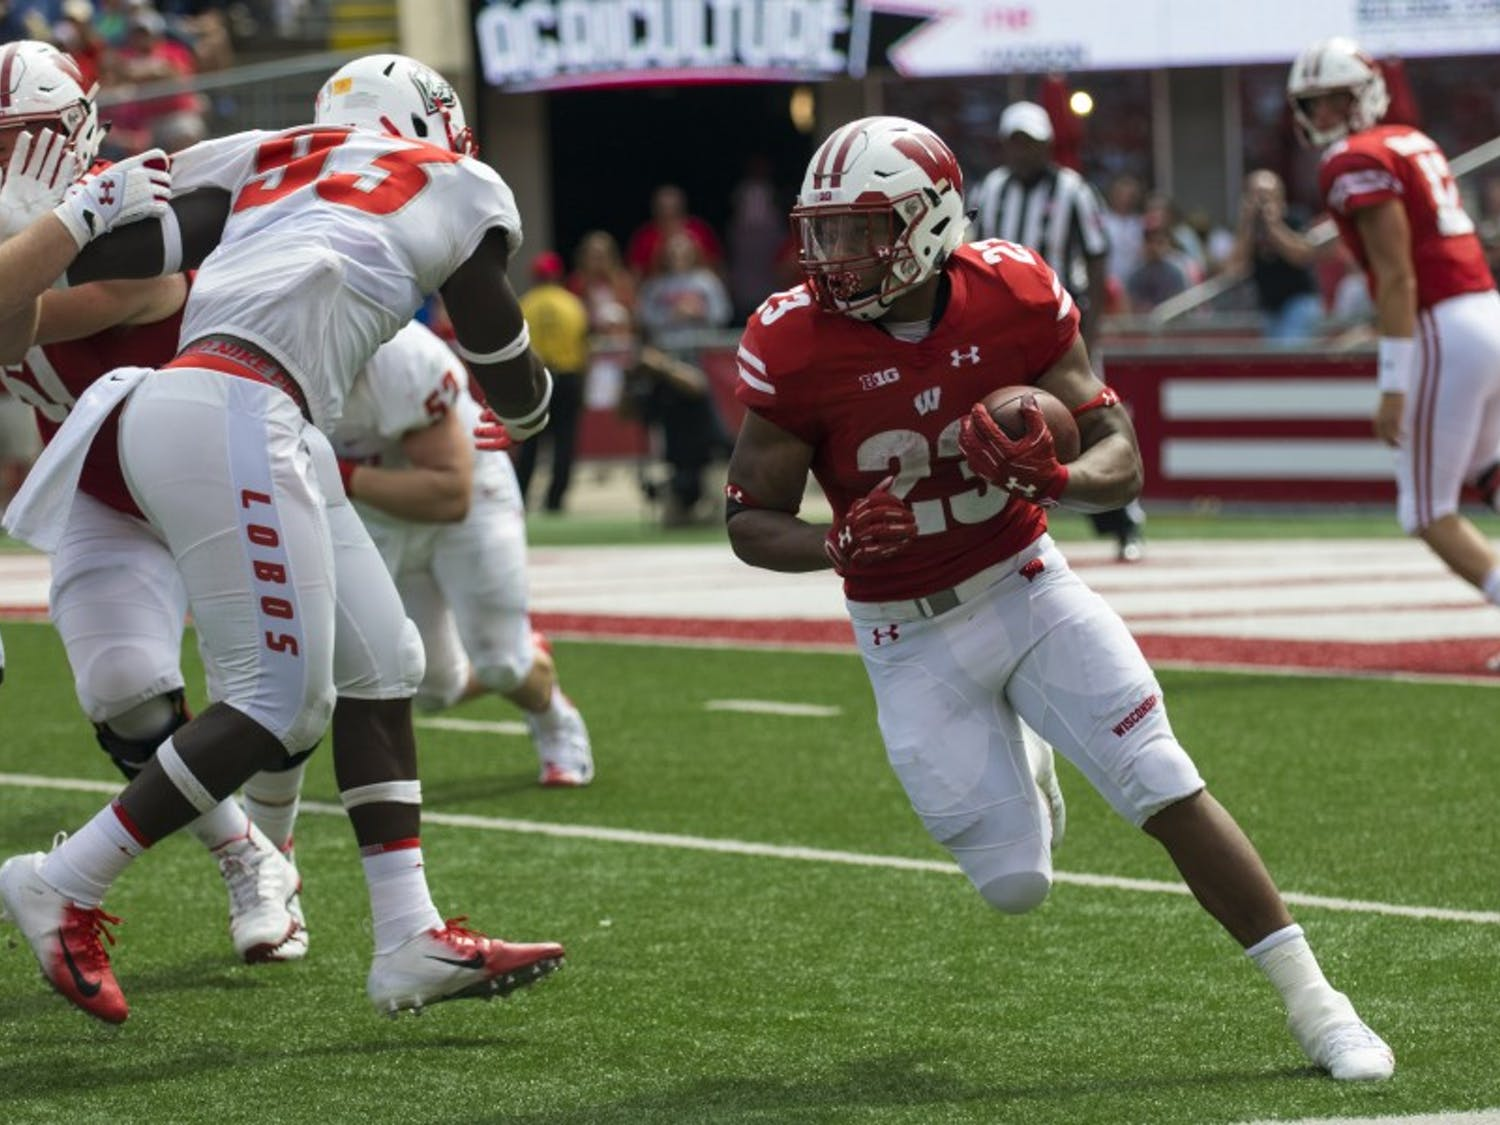 Despite a big game for sophomore Jonathan Taylor, the Badgers fell to Penn State 22-10.